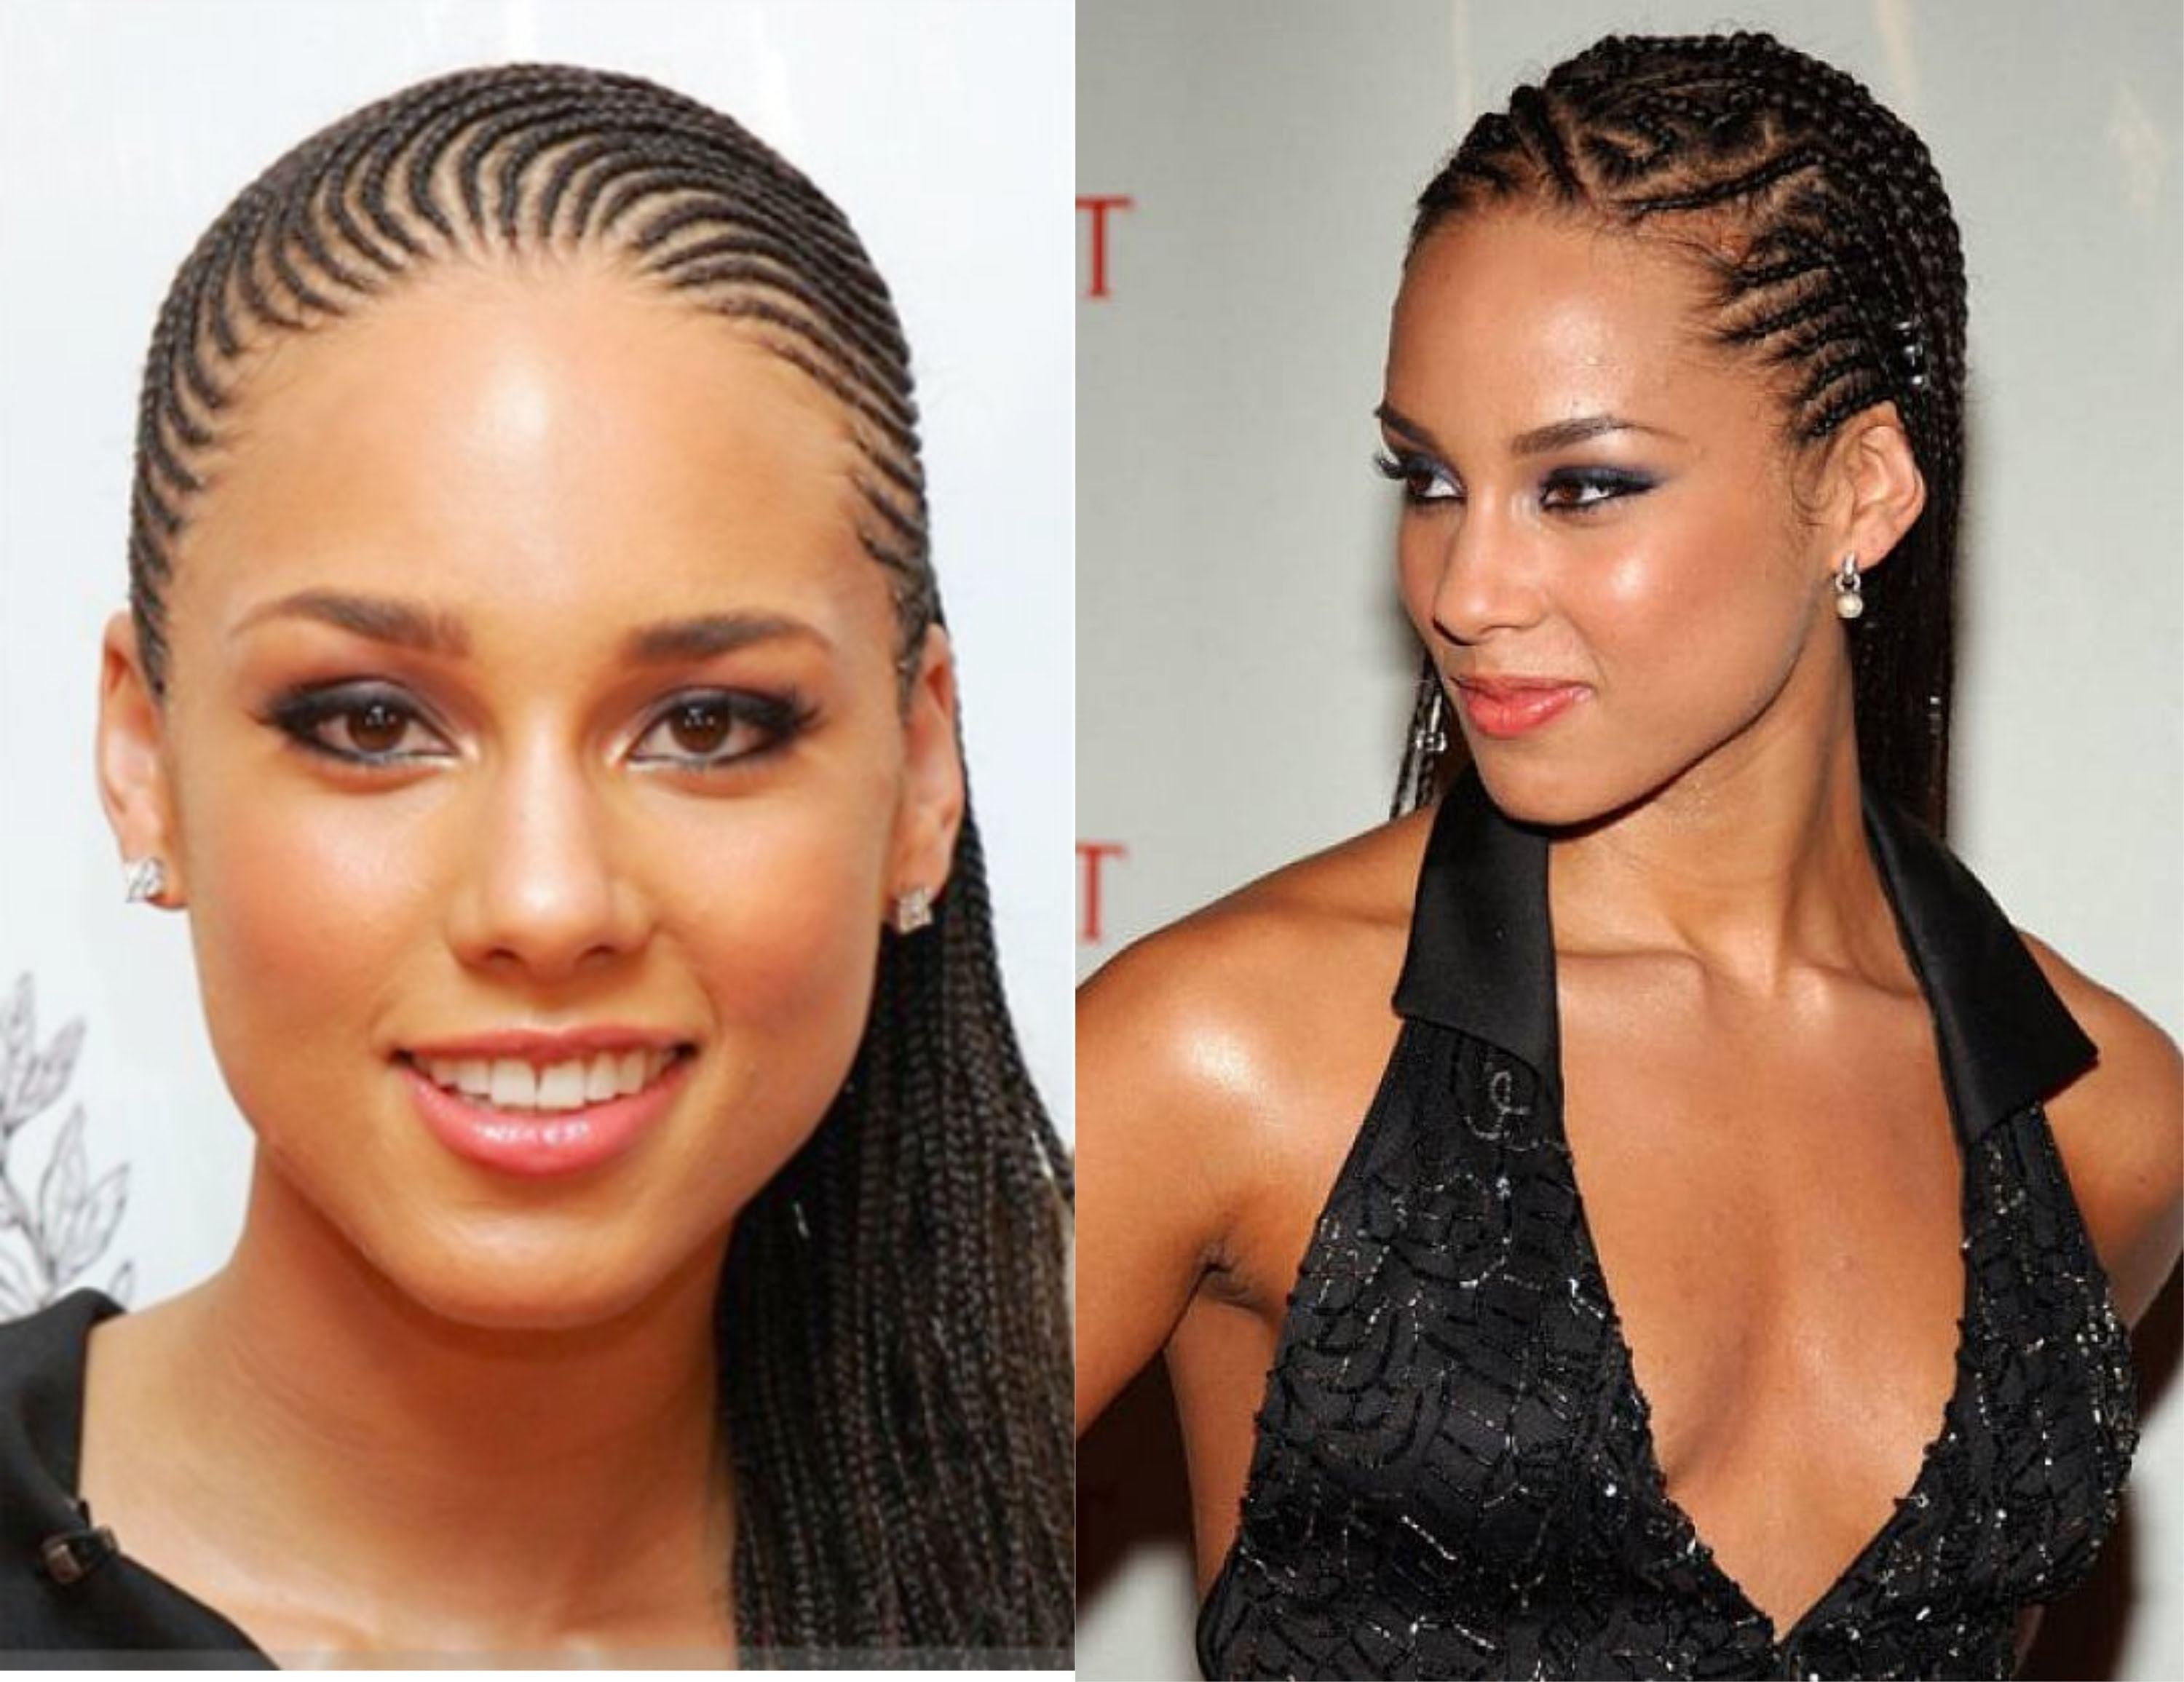 Famous Braided Hairstyles For Women Intended For Braids Hairstyles For Black Women – Youtube (View 2 of 15)